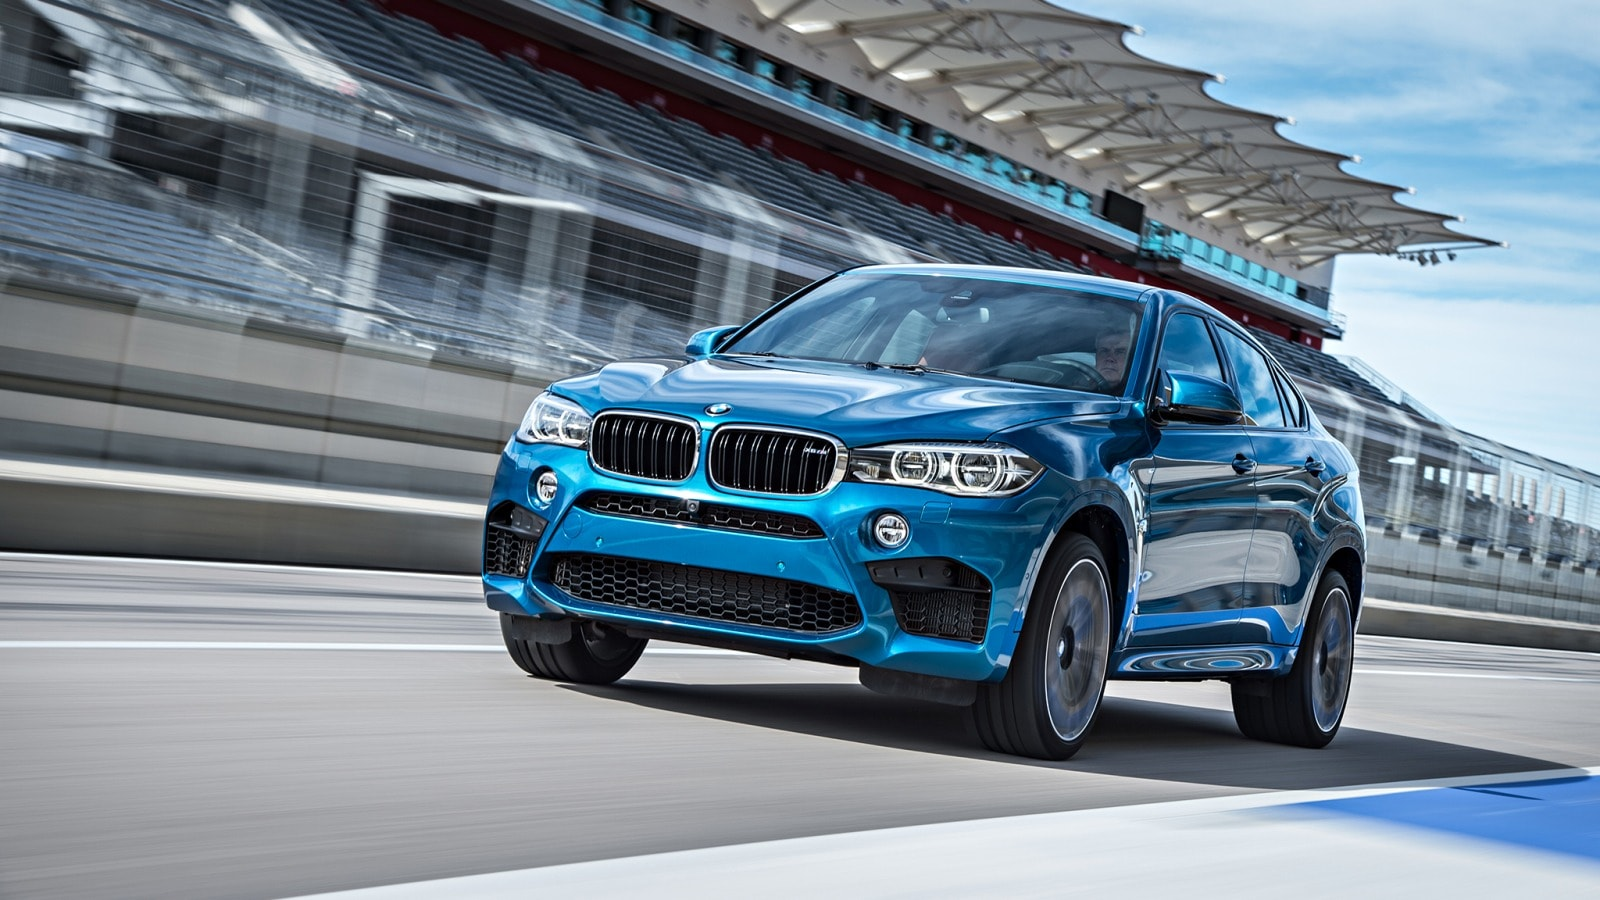 hight resolution of 2017 bmw x6 m